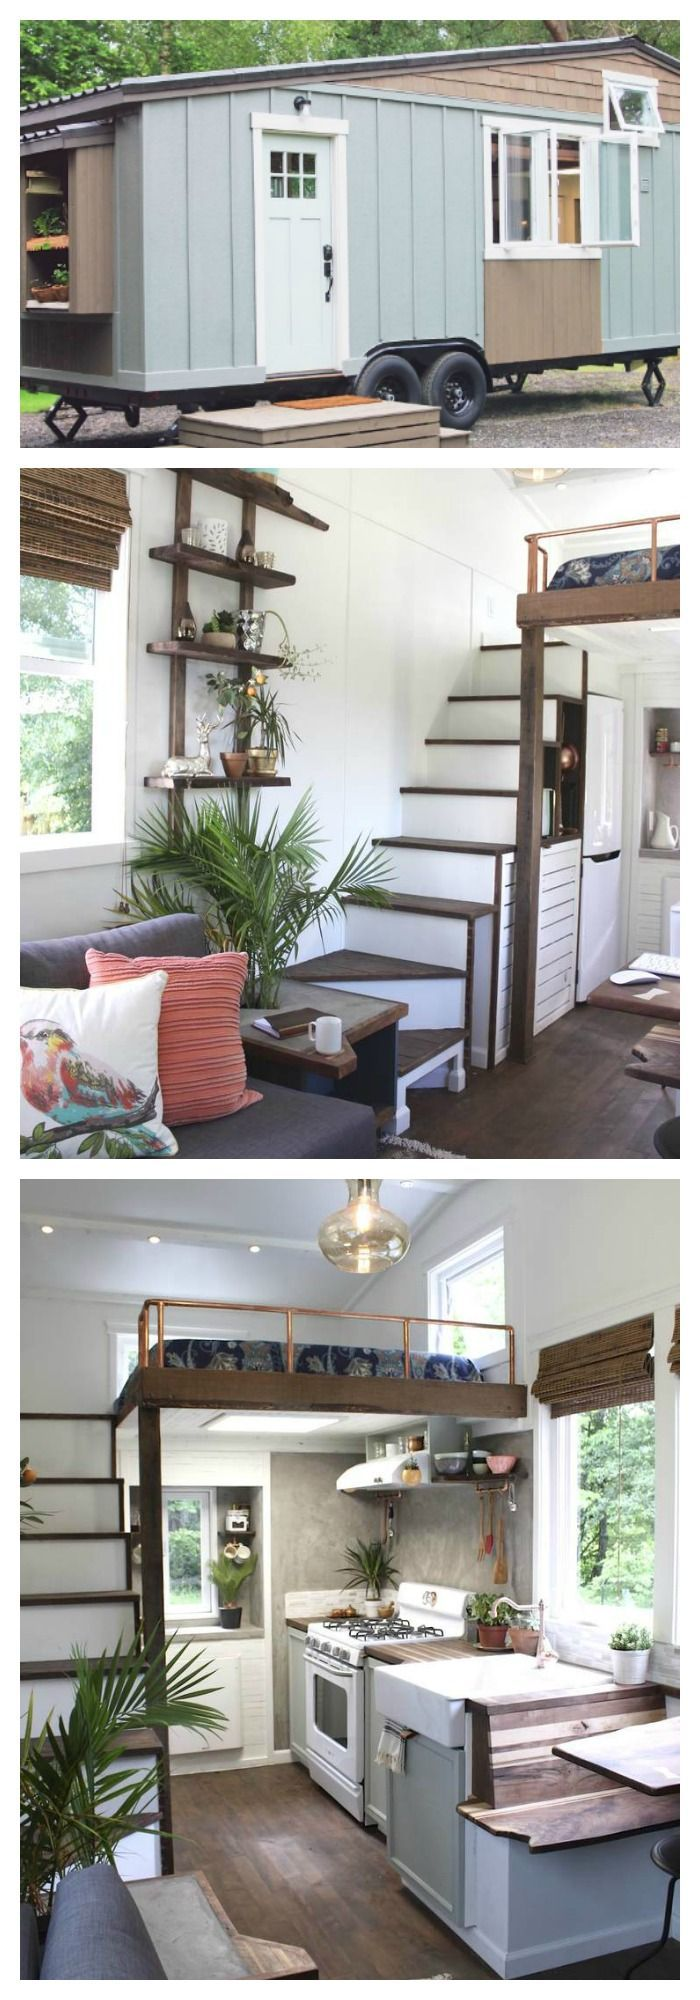 best 25+ inside tiny houses ideas on pinterest | mini homes, park